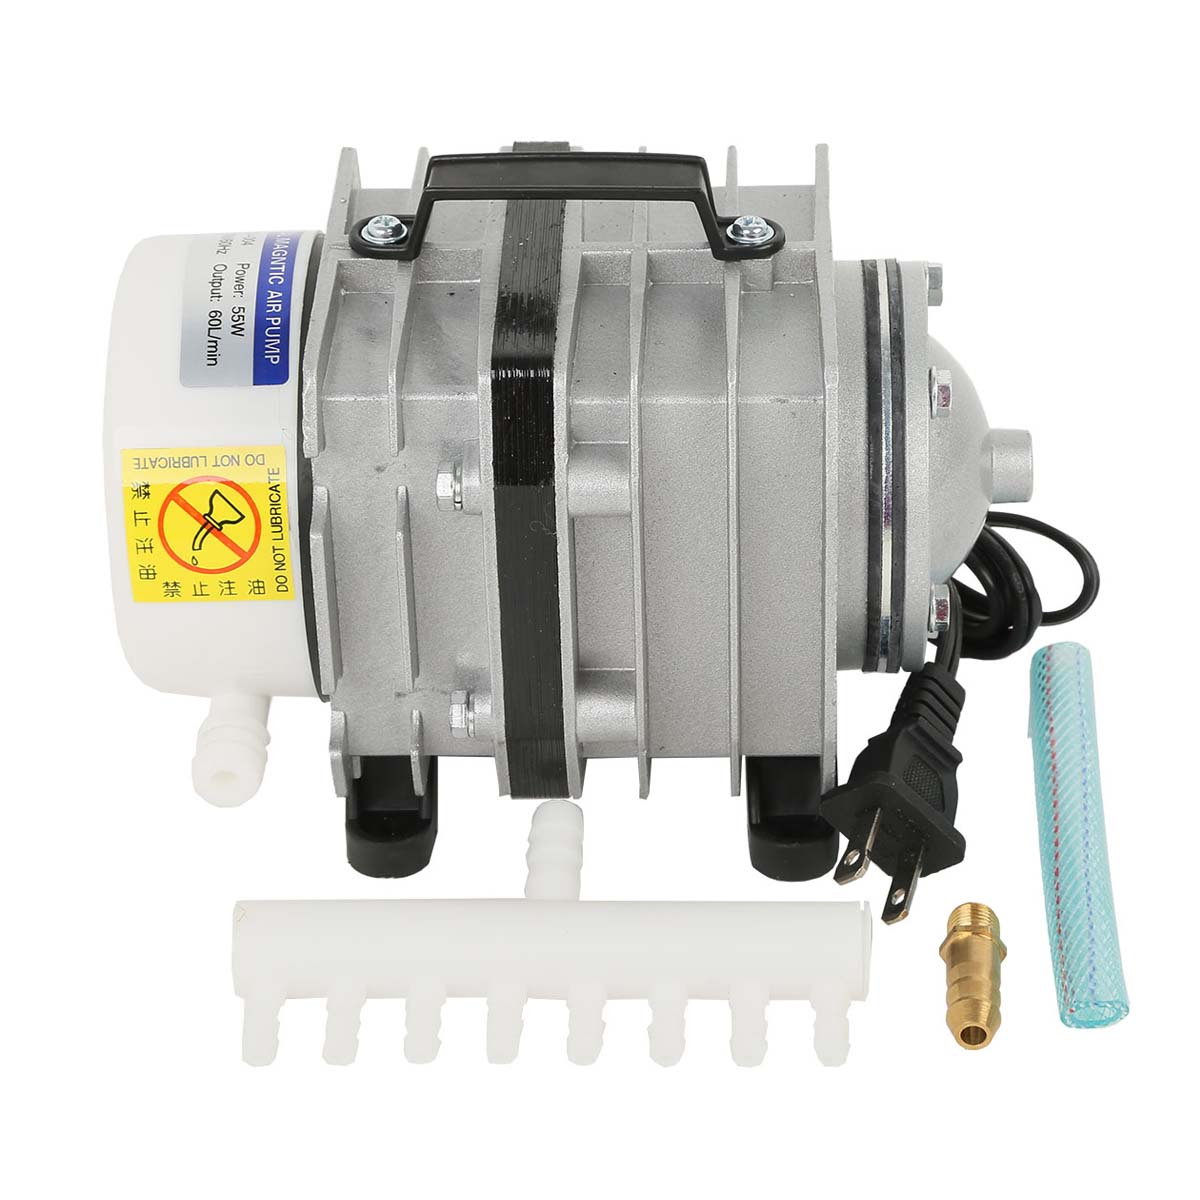 8 outlet commercial air pump elemental o2 aquarium for Hydroponic air pump